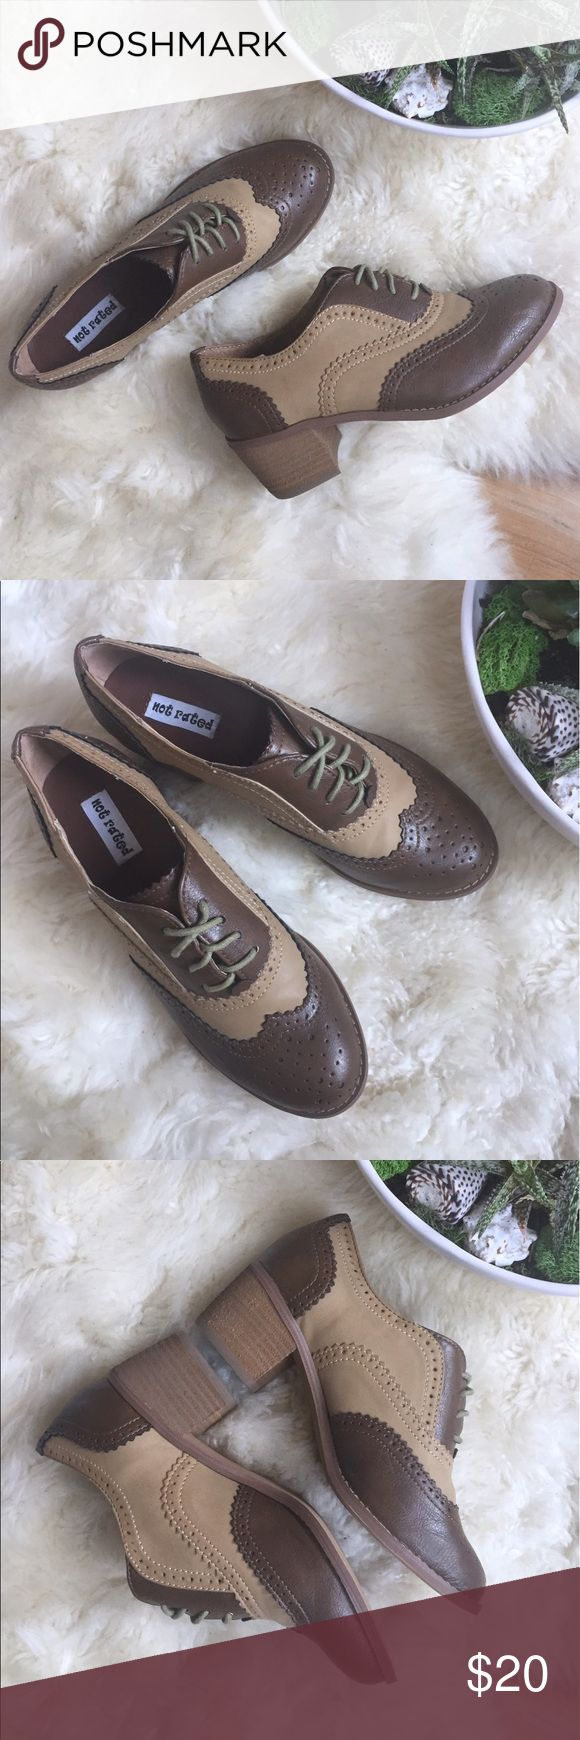 """Not Rated Taupe and Brown Oxfords Not Rated """"Blue Print"""" taupe and brown oxfords with a stacked, wooden heel. Barely worn. Women's size 6. See pictures for details! Not Rated Shoes Flats & Loafers"""